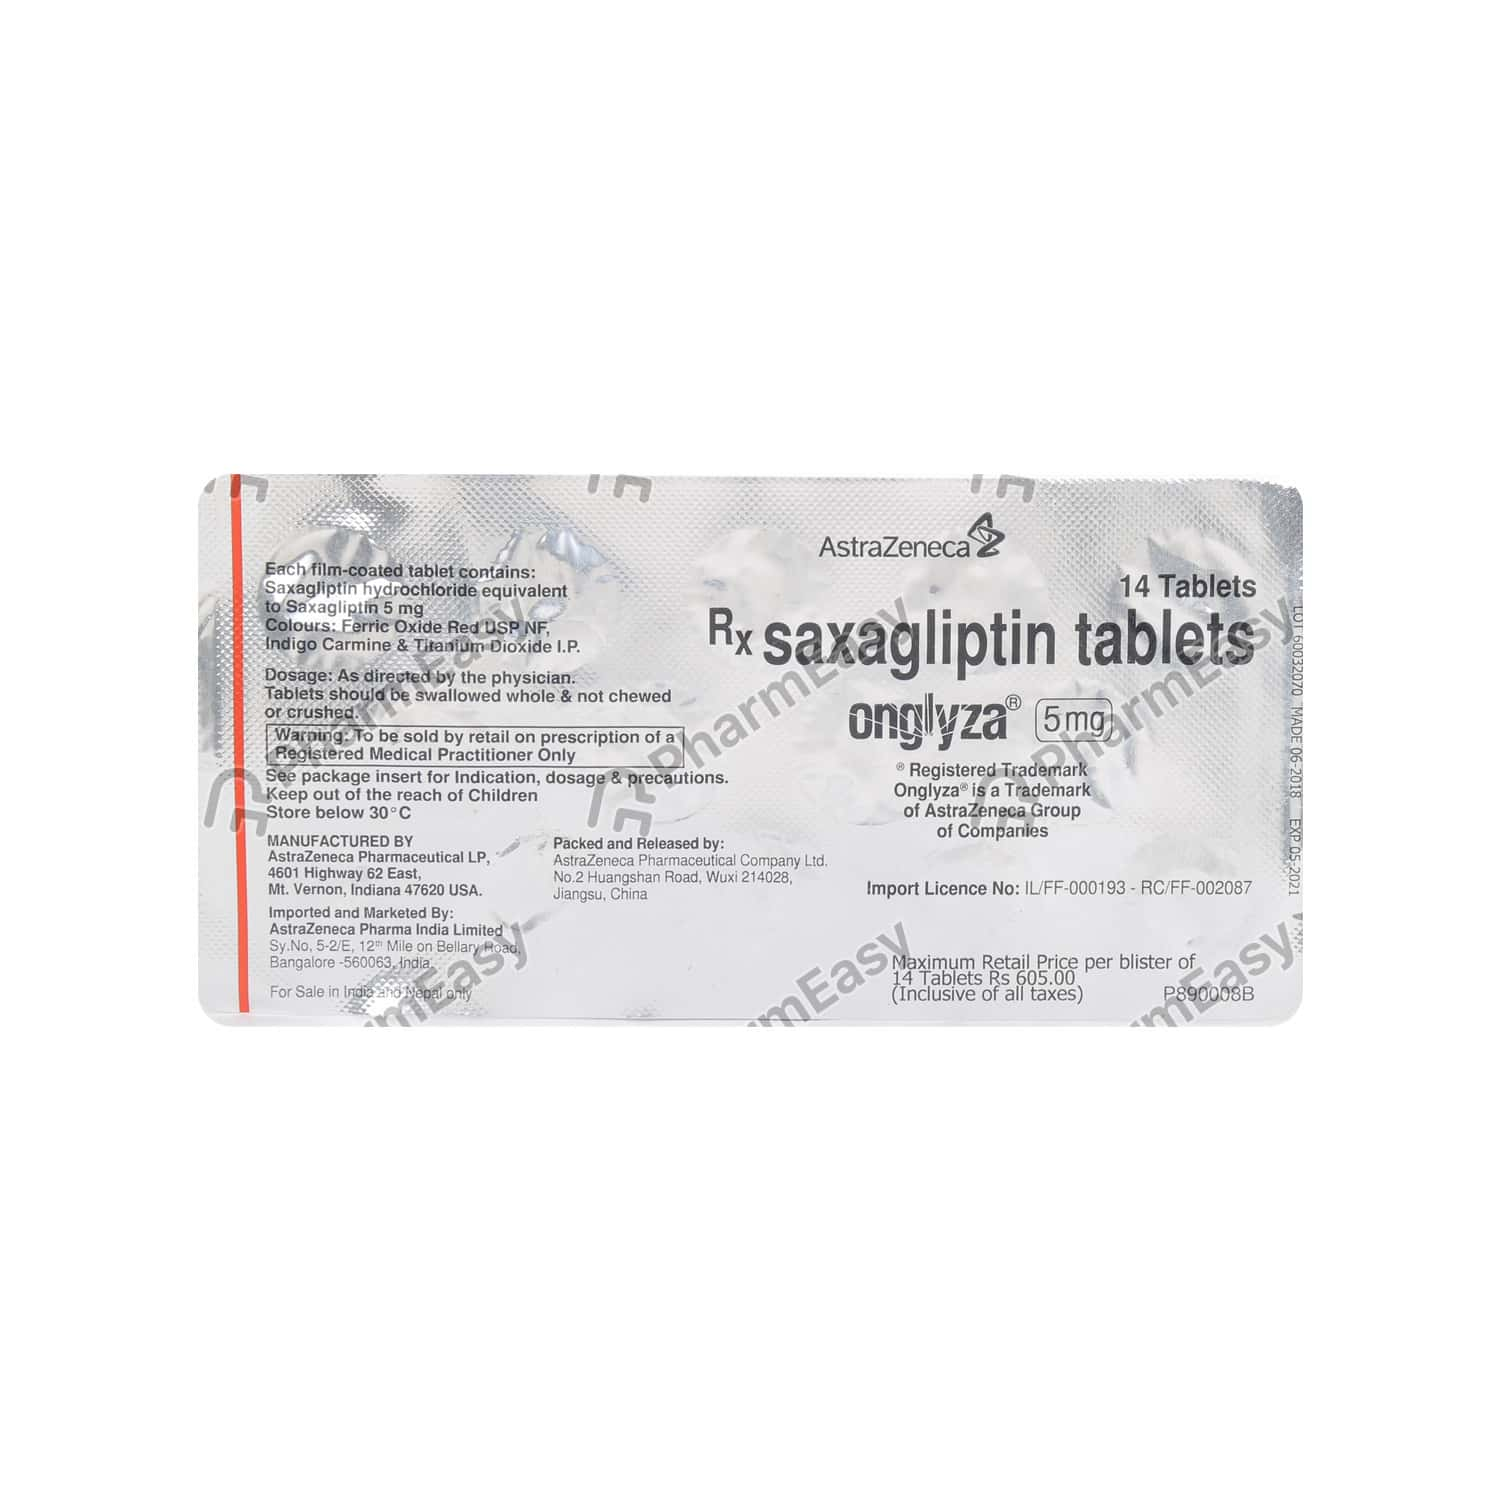 Onglyza 5mg Strip Of 14 Tablets